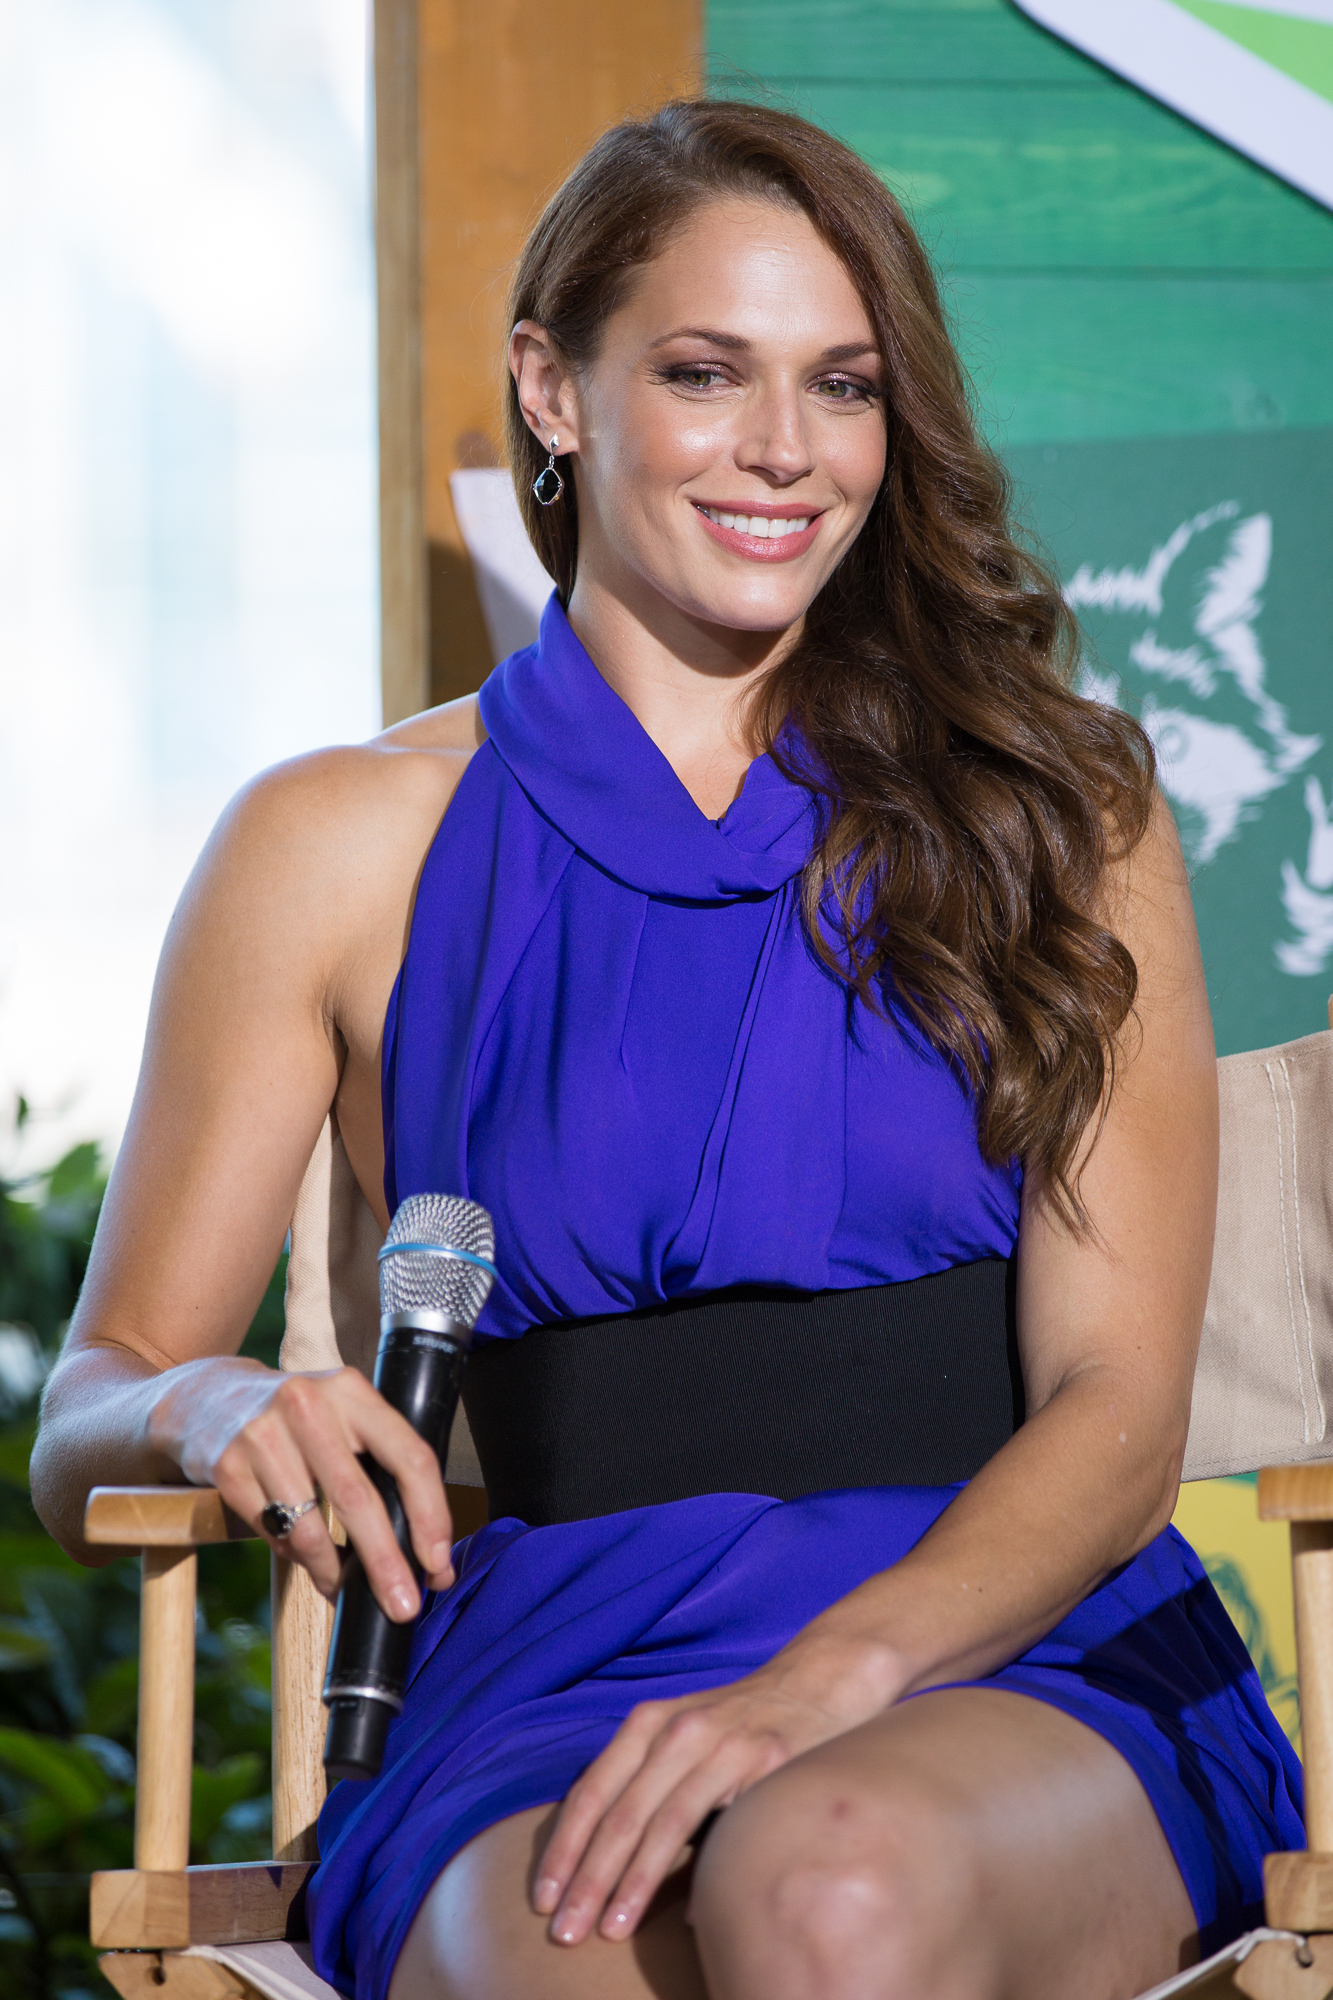 Nude Pictures Of Amanda Righetti